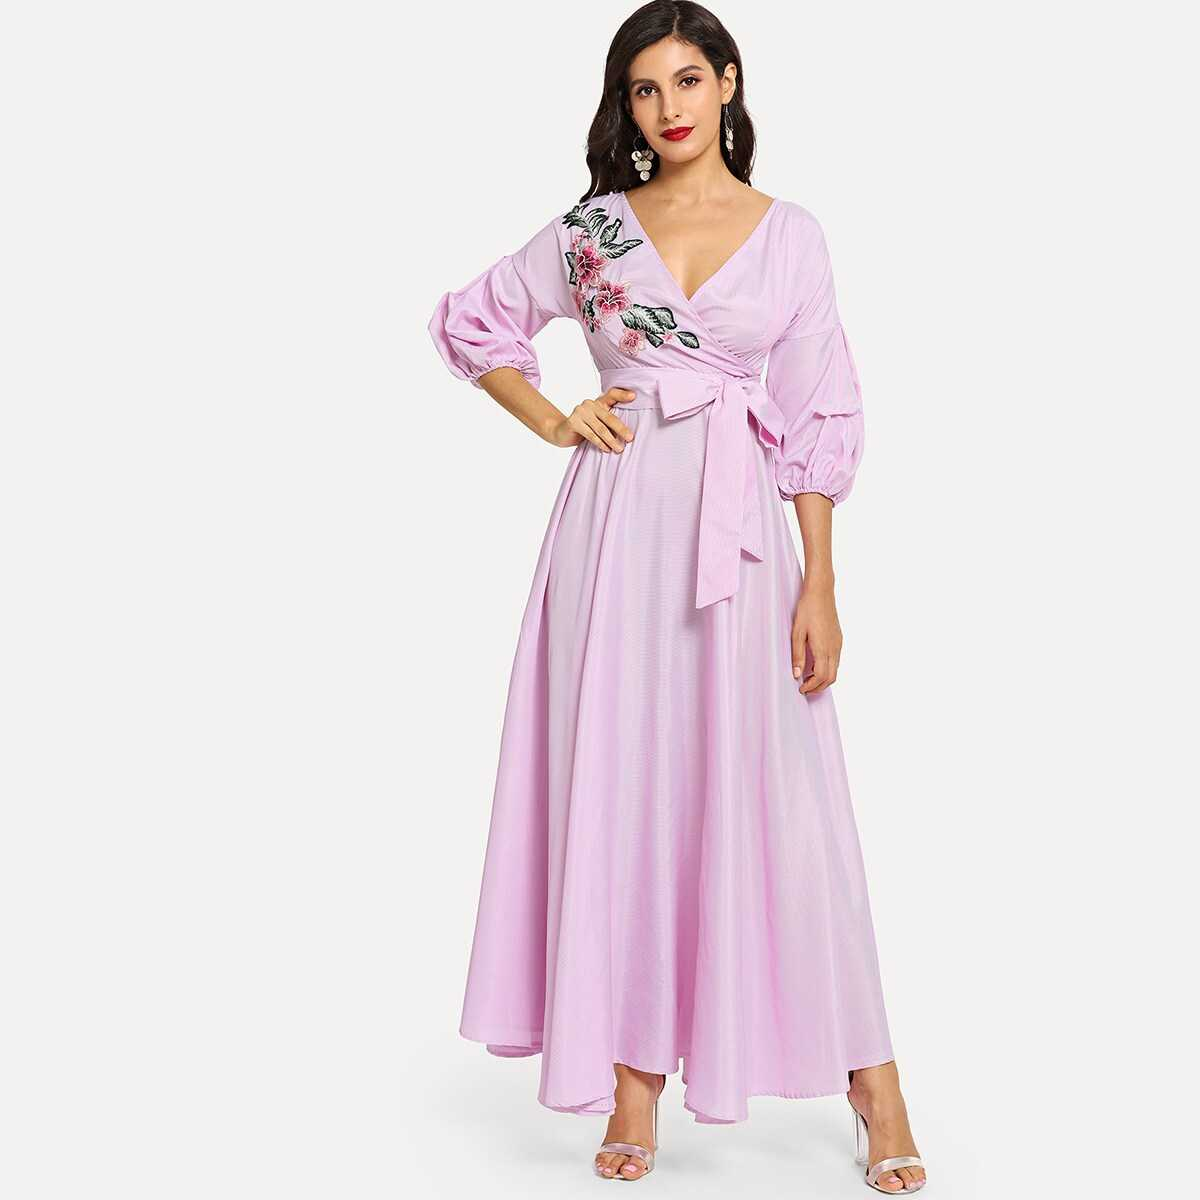 Flower Patch Puff Sleeve Surplice Wrap Dress - Shein - GOOFASH